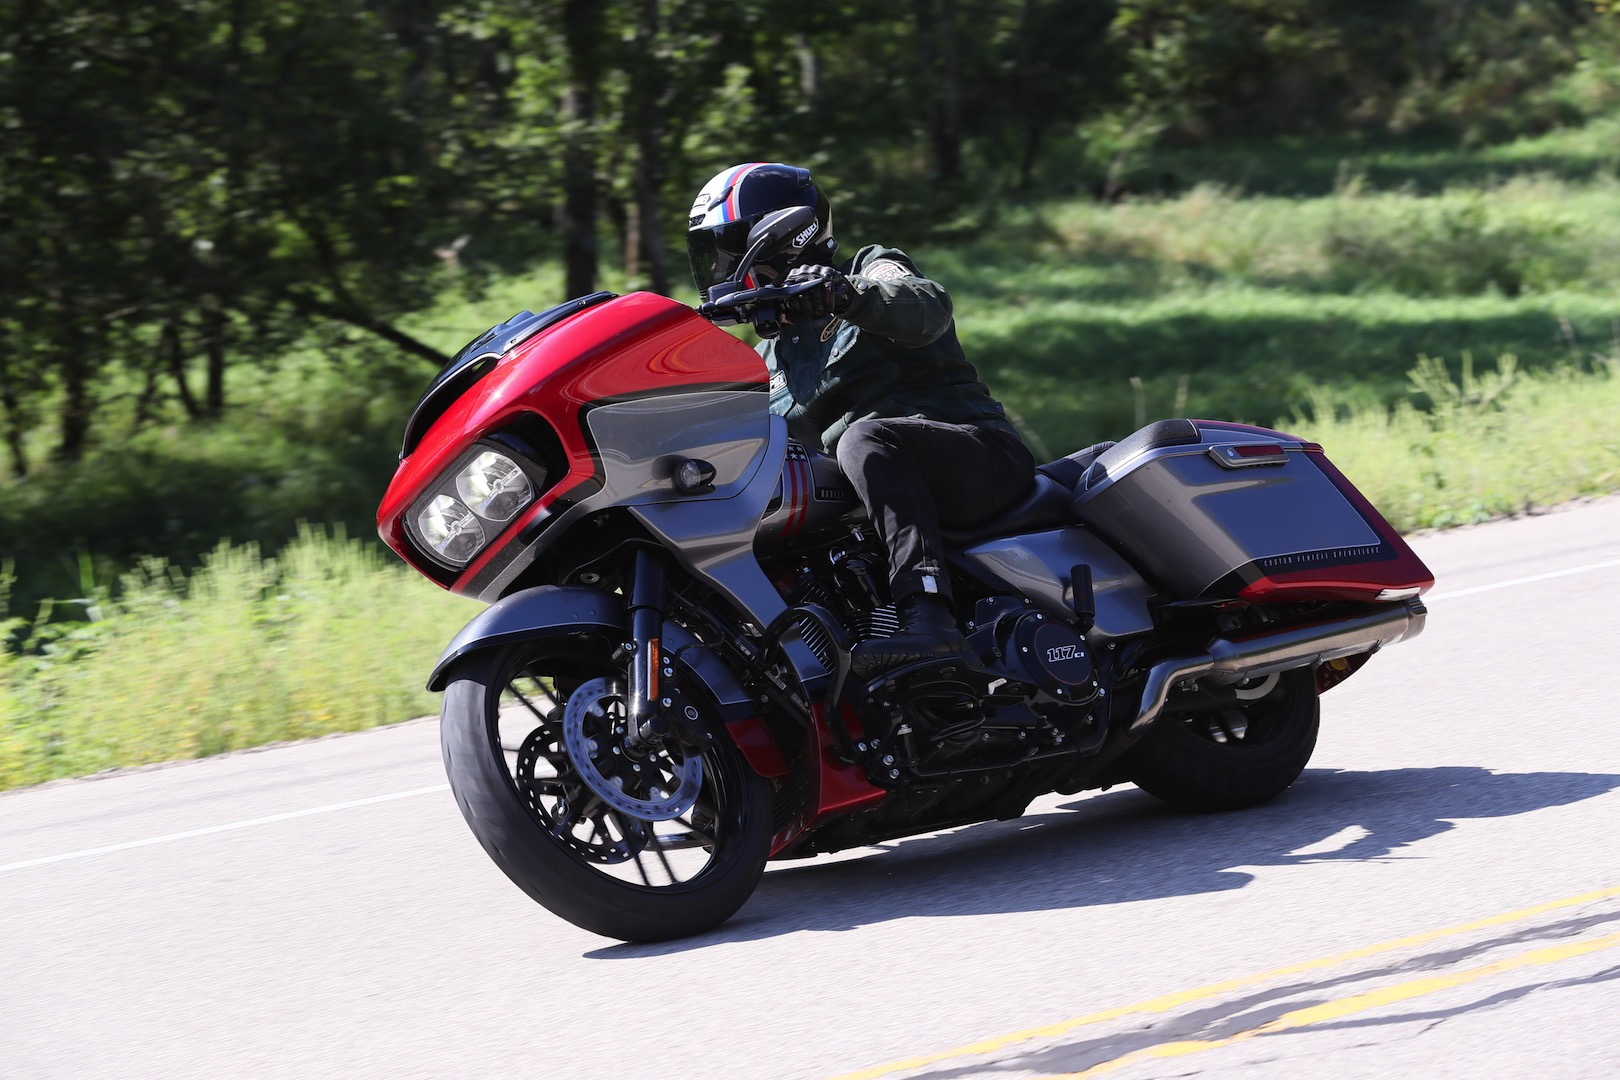 2019 harley davidson cvo road glide review 17 fast facts. Black Bedroom Furniture Sets. Home Design Ideas